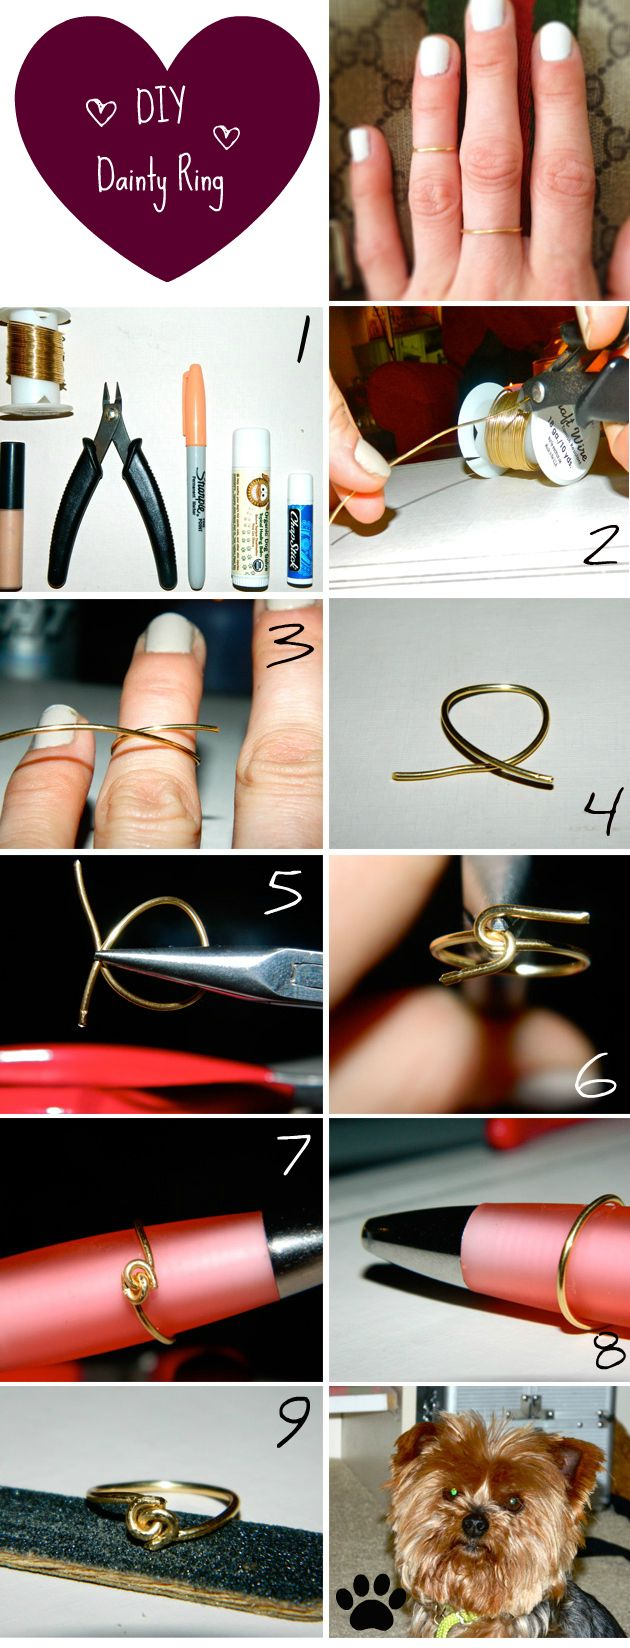 Too bad I already wear my mom's ring that's just like this! (PS-Wear the knot on the top!)